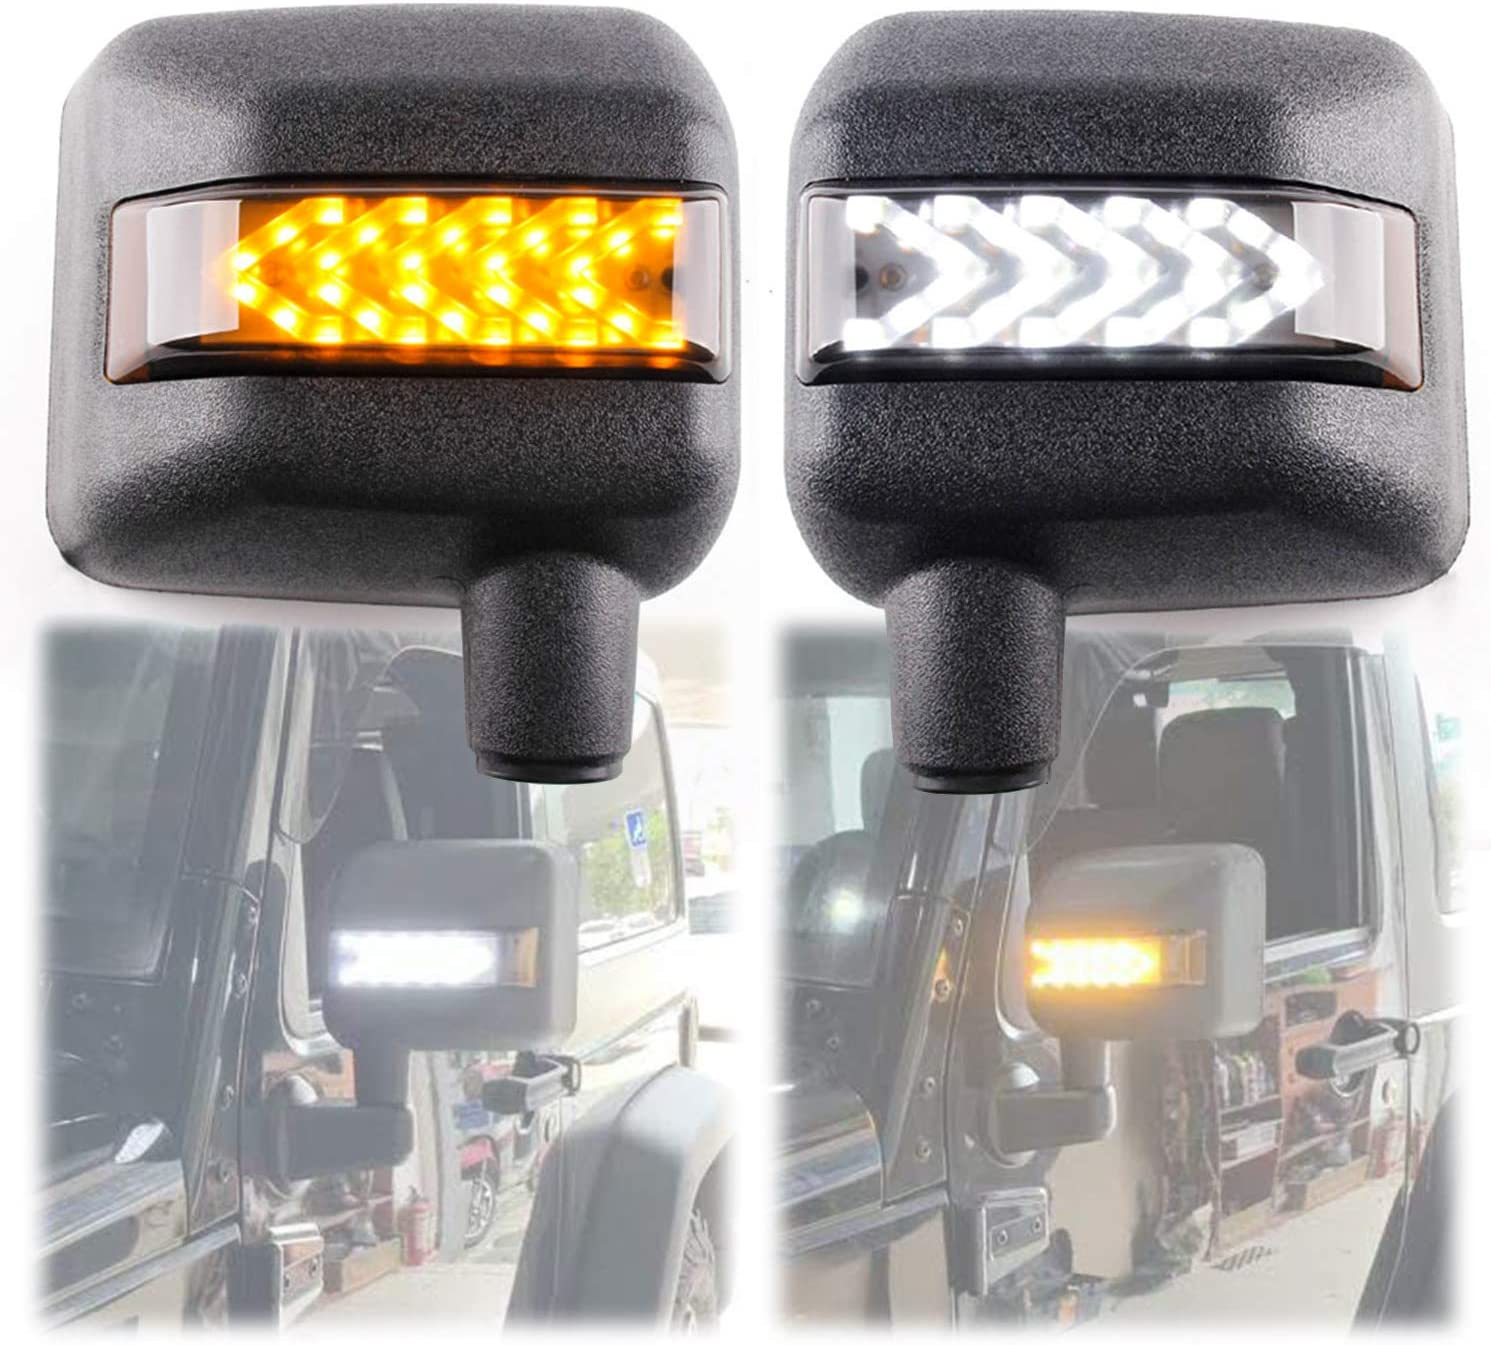 KMFCDAE Side View Mirror Housing with OFFicial site White Amber S DRL LED Beauty products Turn